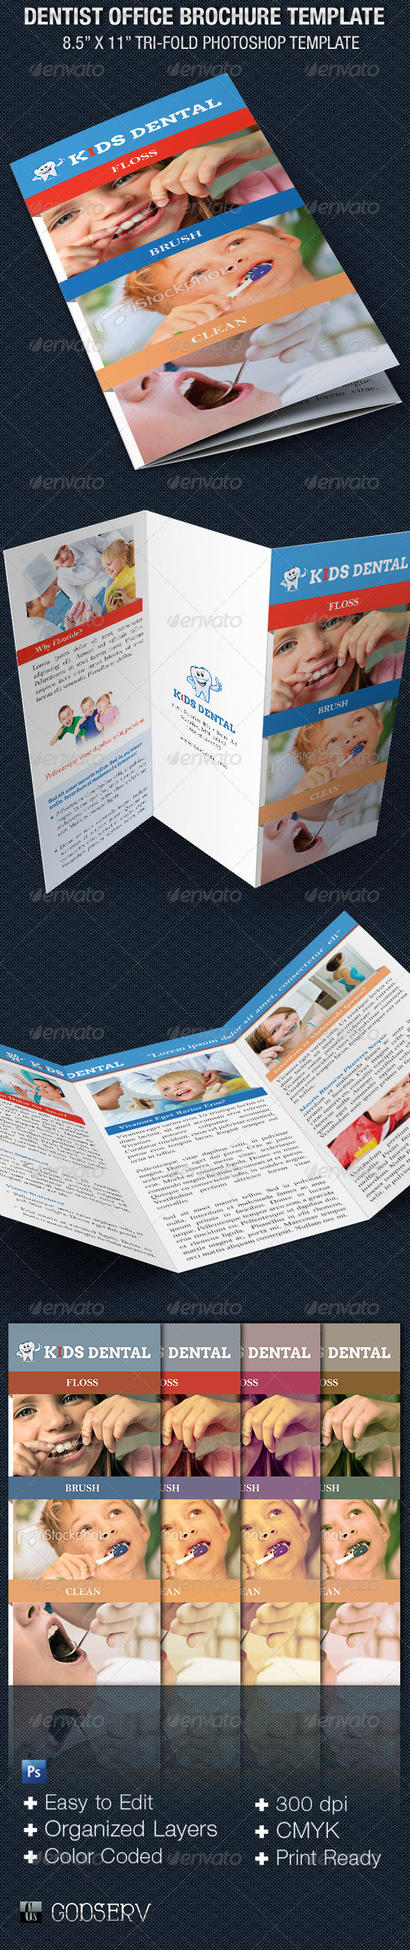 dentist office tri fold brochure template by godserv on deviantart. Black Bedroom Furniture Sets. Home Design Ideas